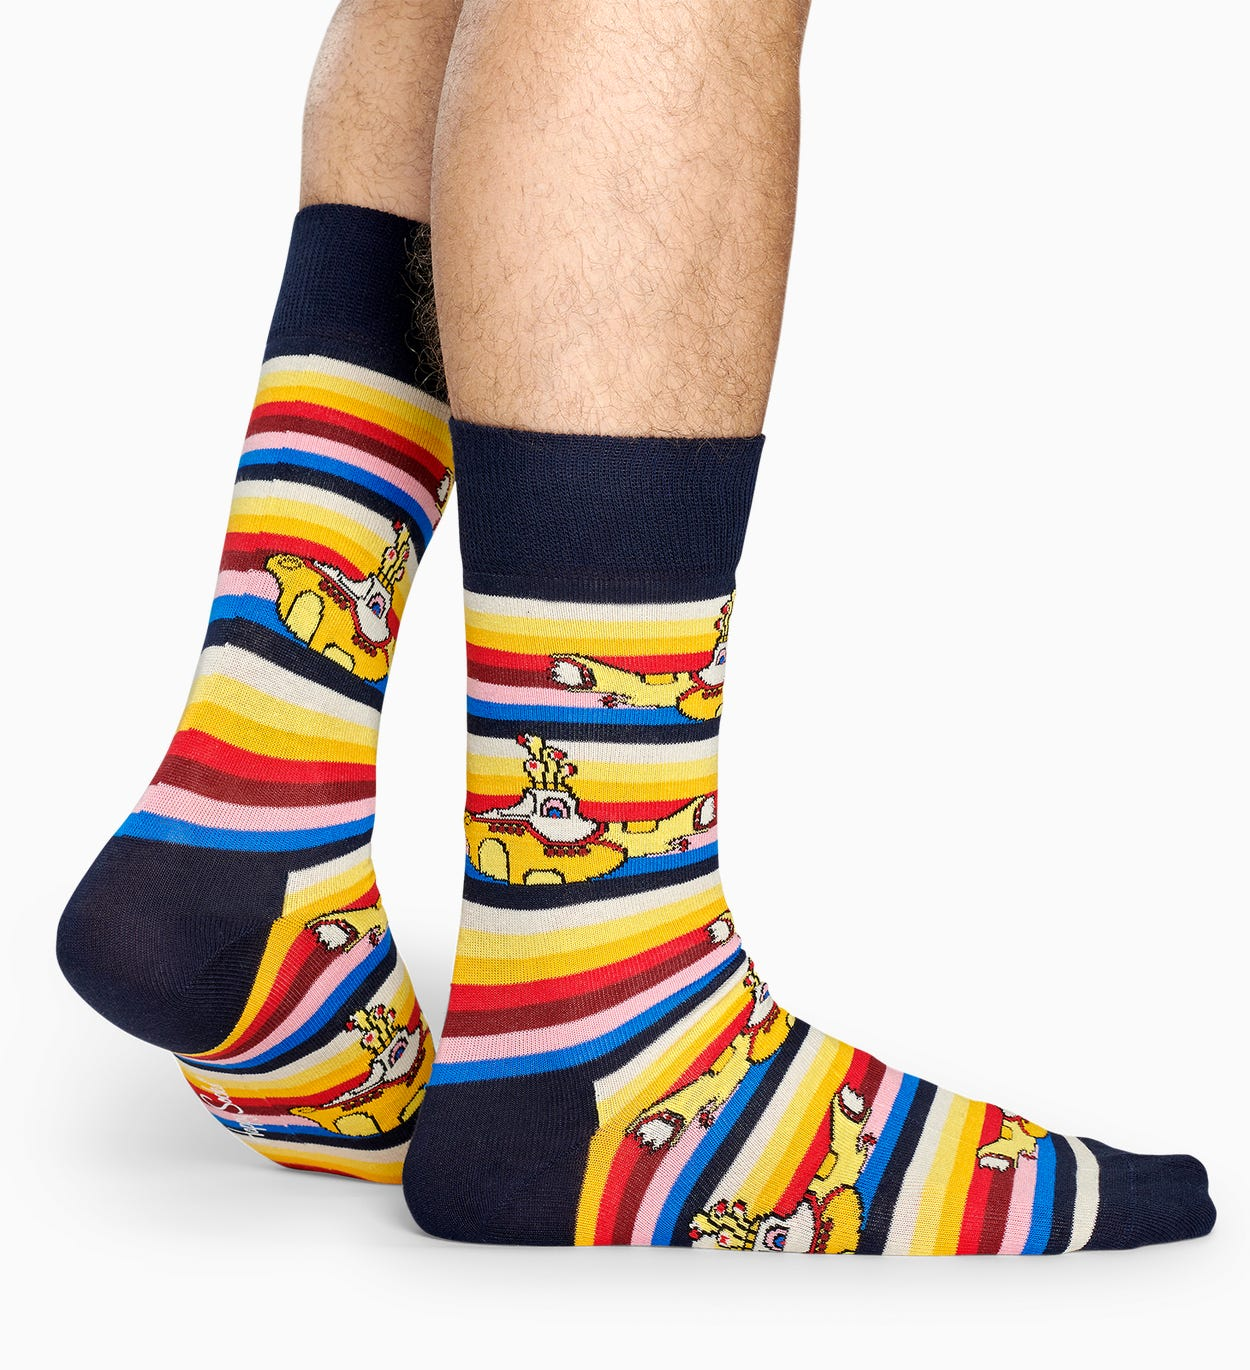 All aboard! This exclusive Beatles All On Board Sock comes in a sea of yellow, blue and red colors. Featuring the iconic Yellow Submarine, this smooth, …